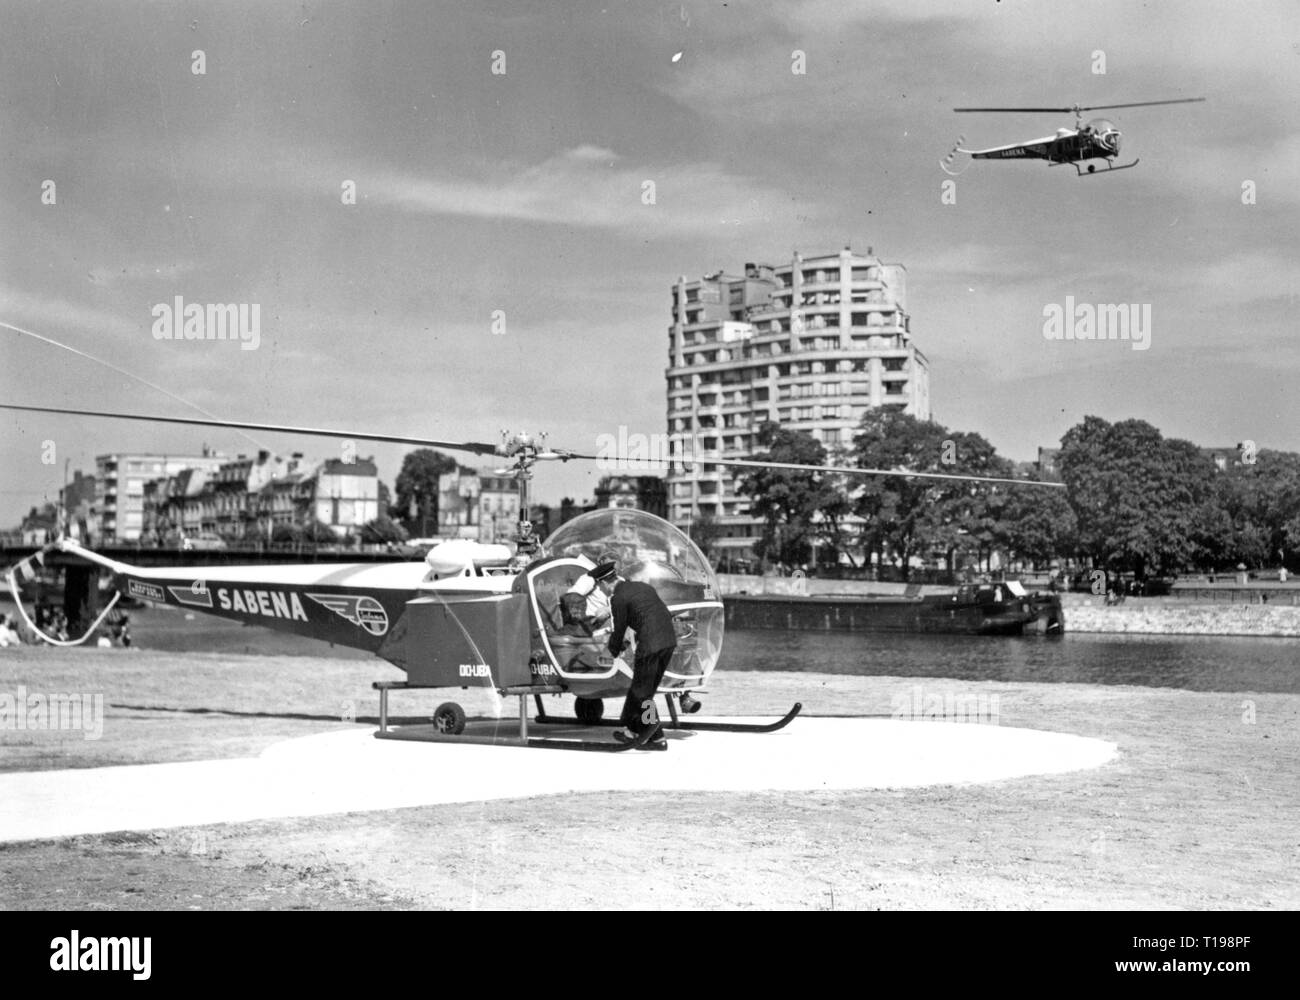 mail, airmail, helicopter Bell 47 D in the postal service of the Sabena, airfield in Liege, Belgium, 1950, Additional-Rights-Clearance-Info-Not-Available - Stock Image